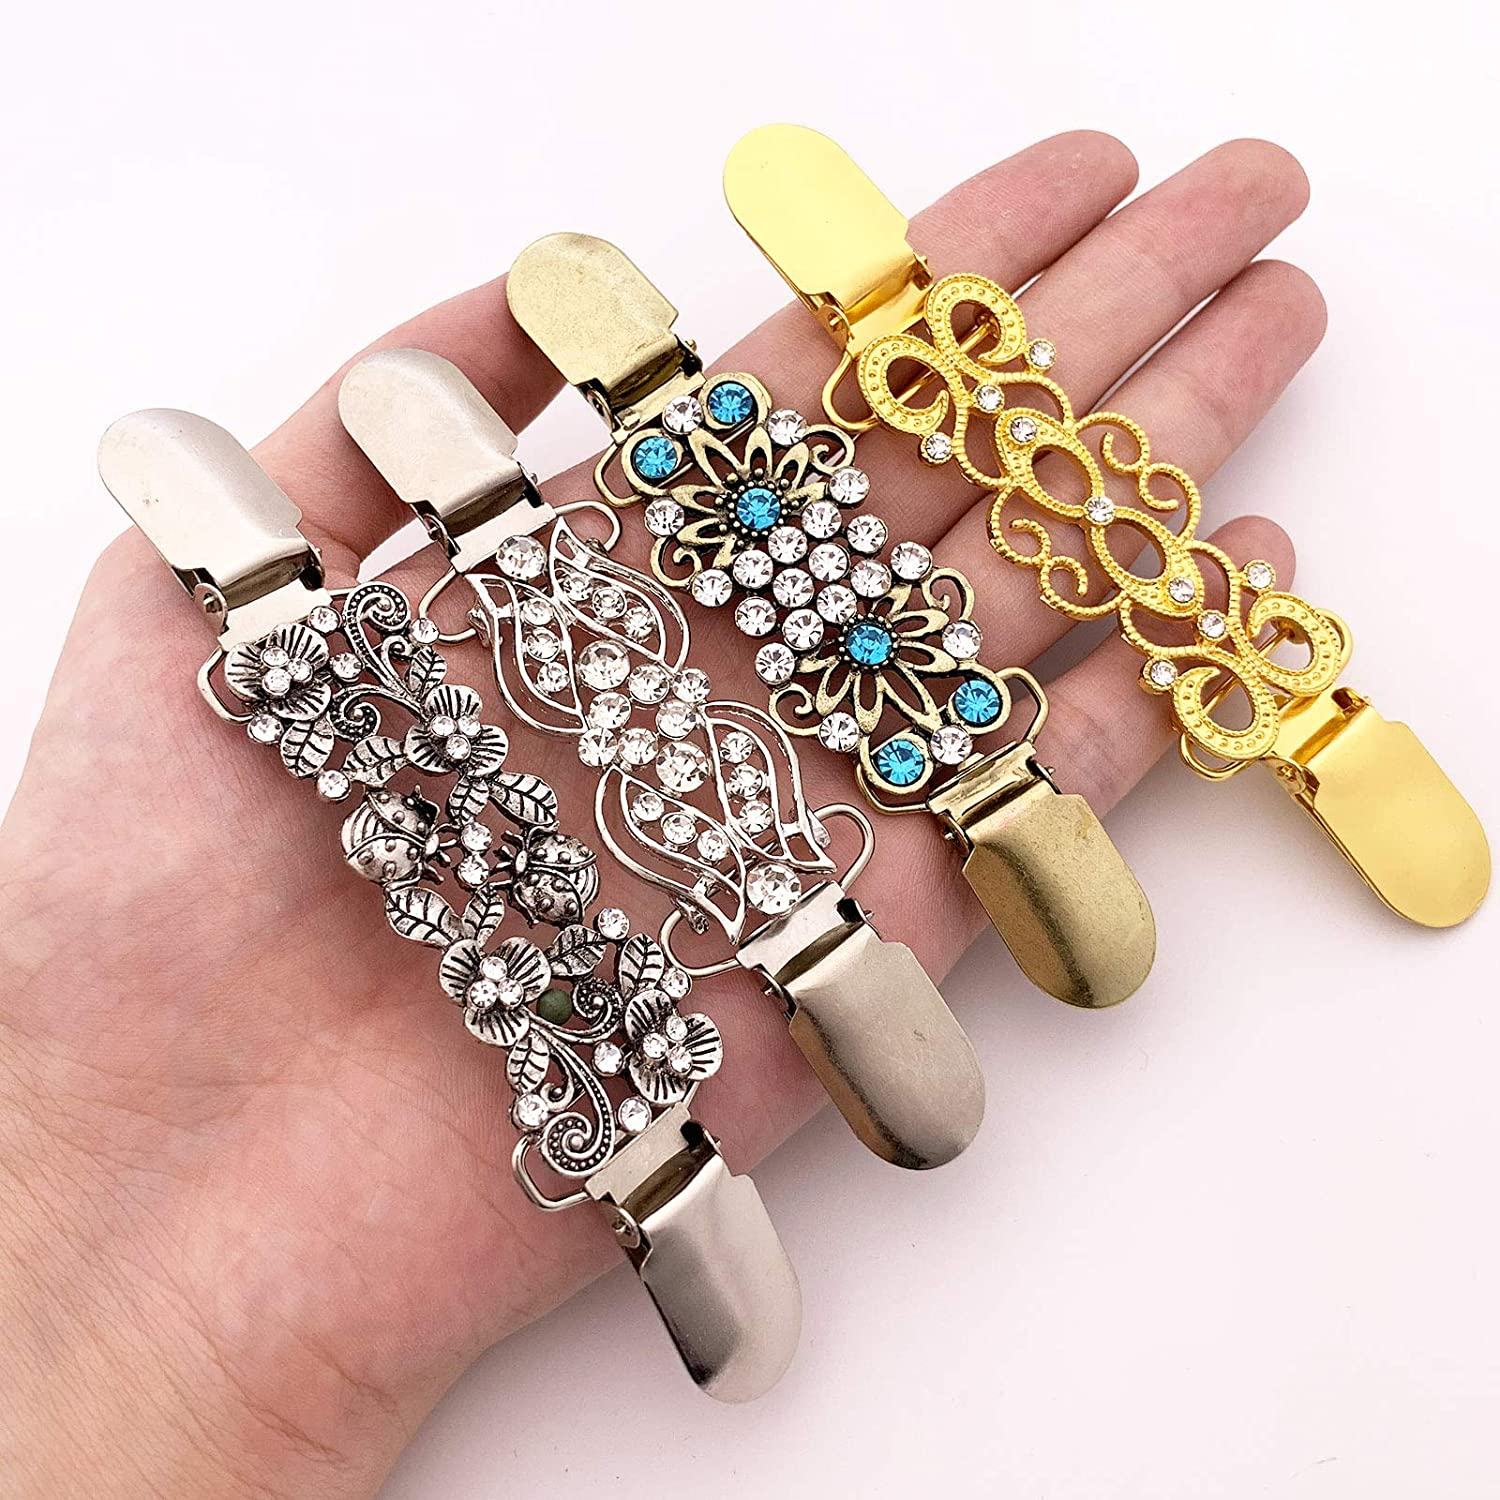 XGALA 4 Pieces Vintage Retro Cardigan Collar Sweater Shawl Retro Cardigan Collar Clips Dress Shirt Brooch Clips for Women Girls